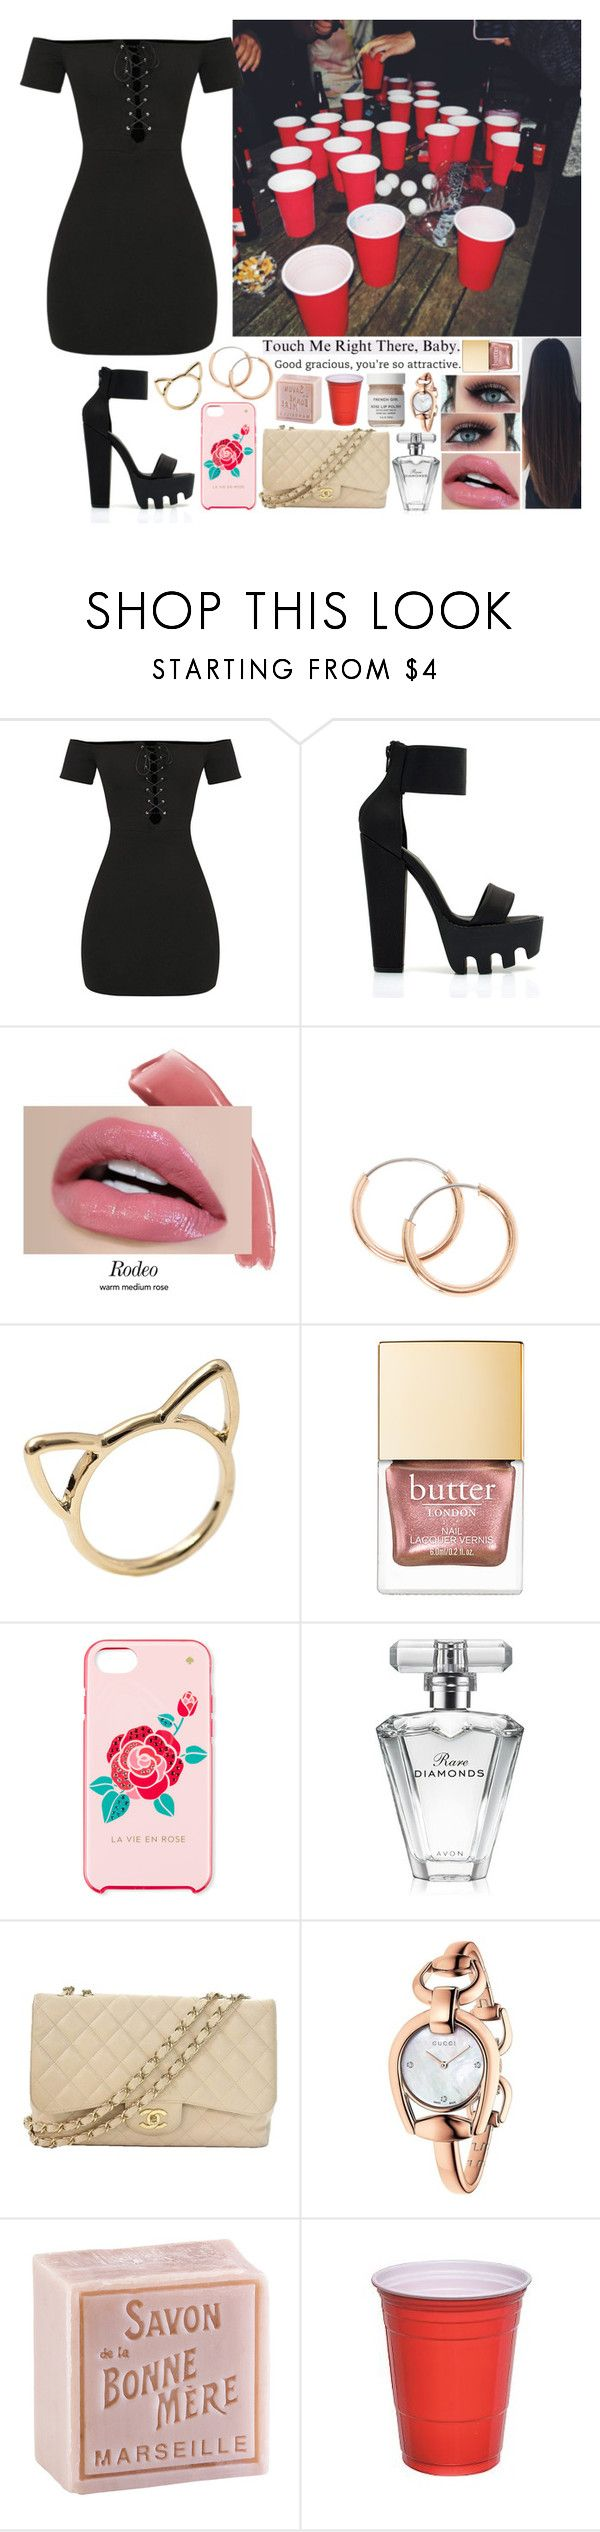 """Sin título #1389"" by gisella-jb-pintos ❤ liked on Polyvore featuring Kate Spade, Avon, Chanel, Gucci, French Girl and L'Occitane"